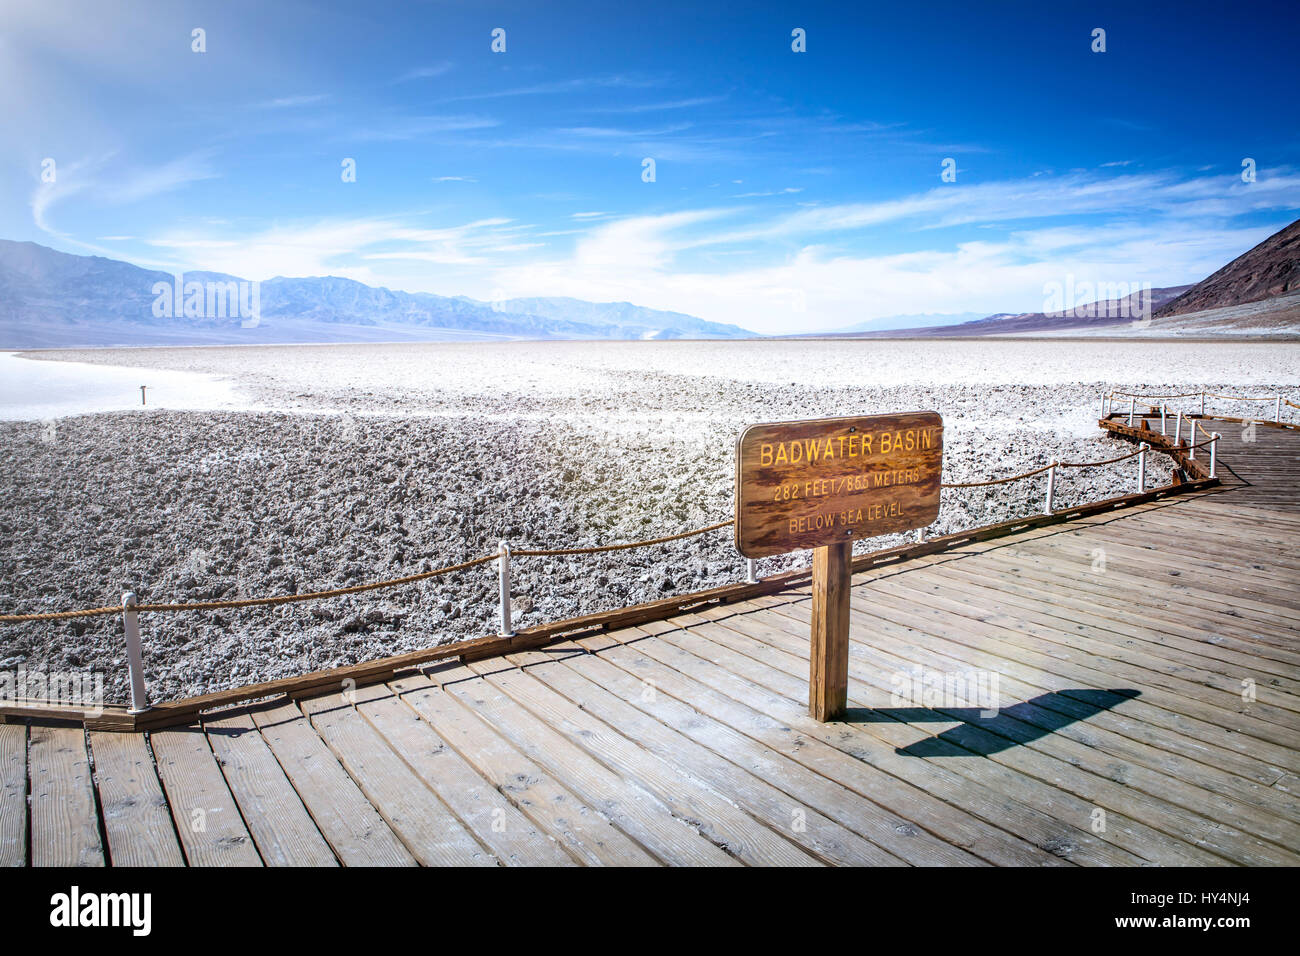 usa california death valley shield badwater basin stock photo